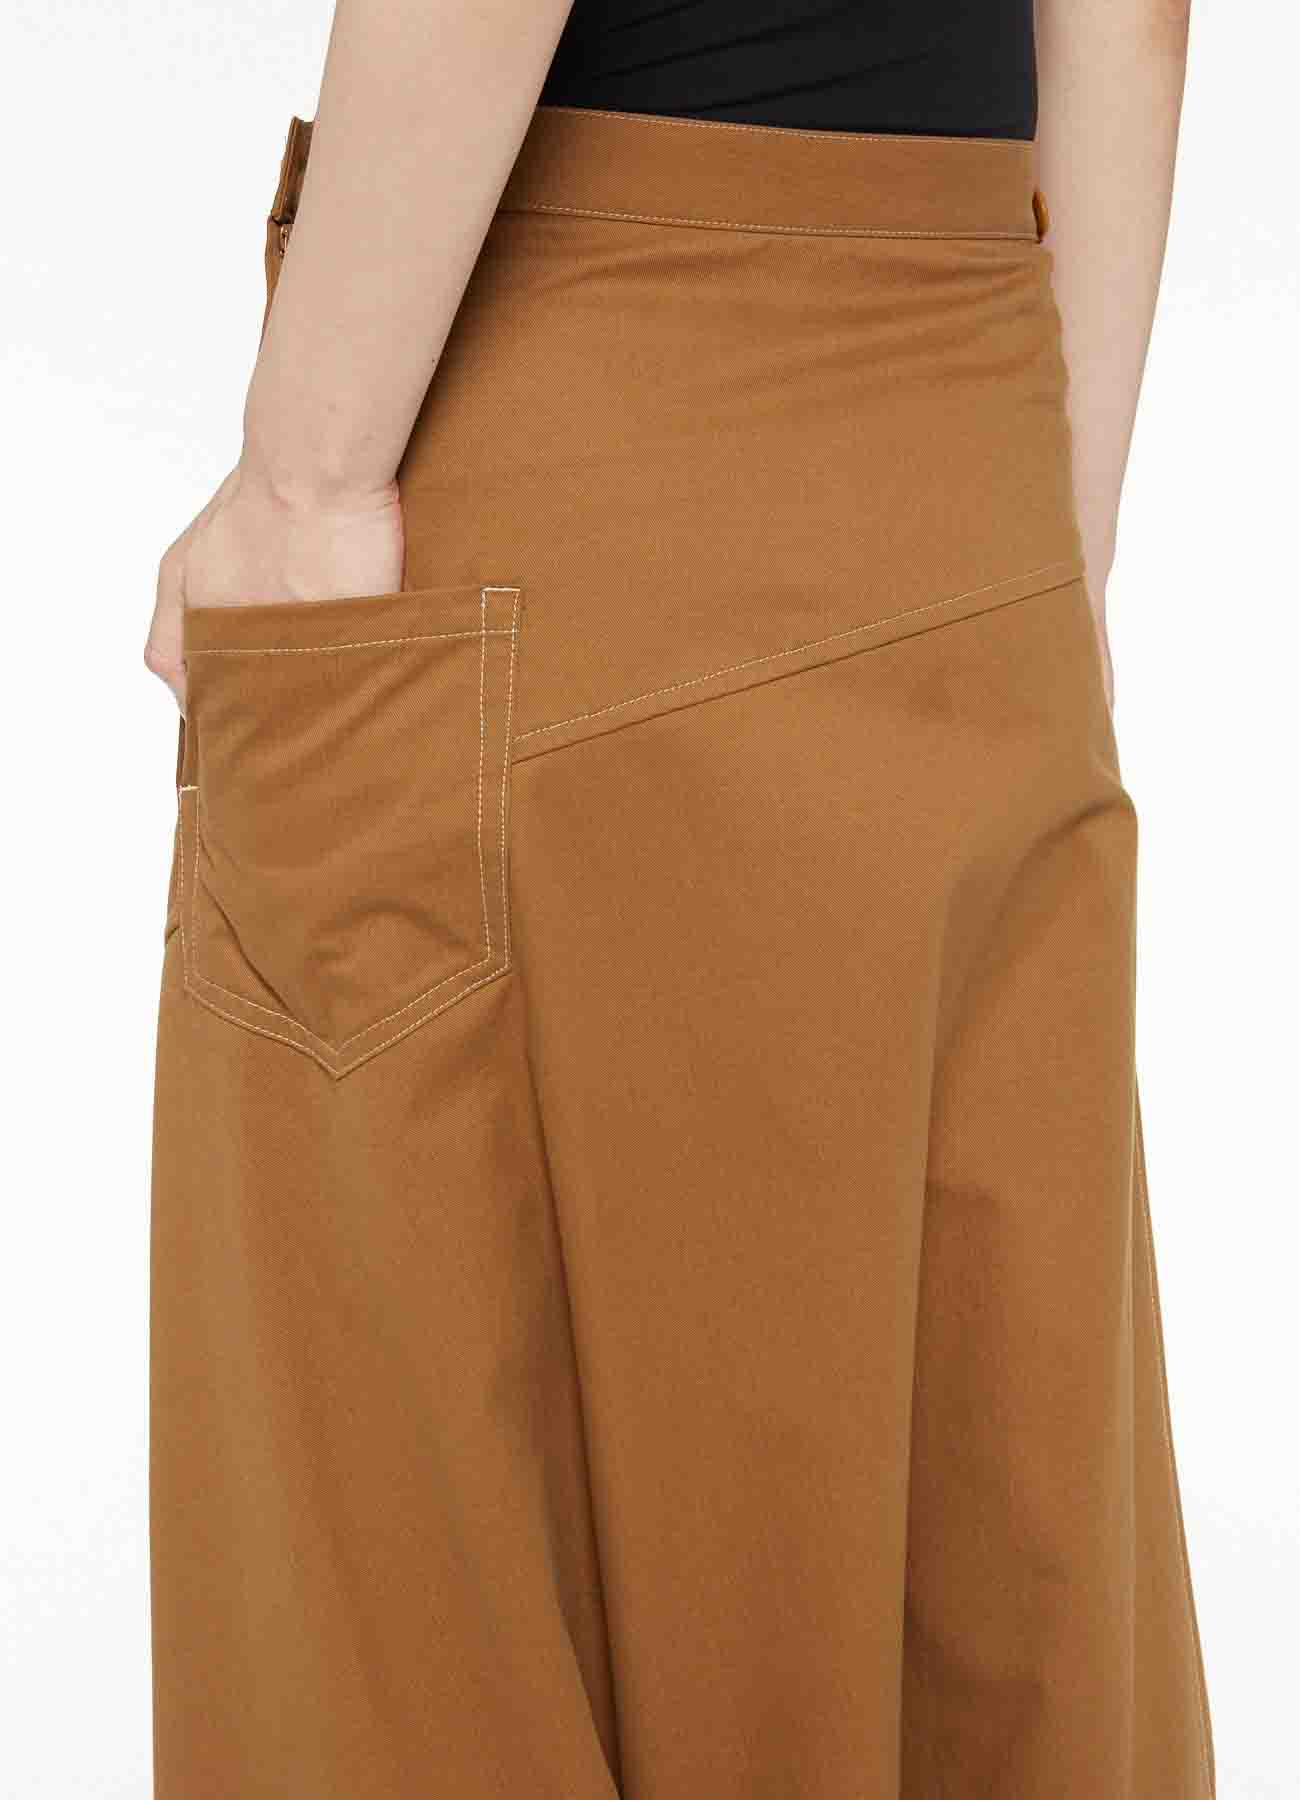 SOFT CHINO CLOTH DESINED SAROUEL PANTS